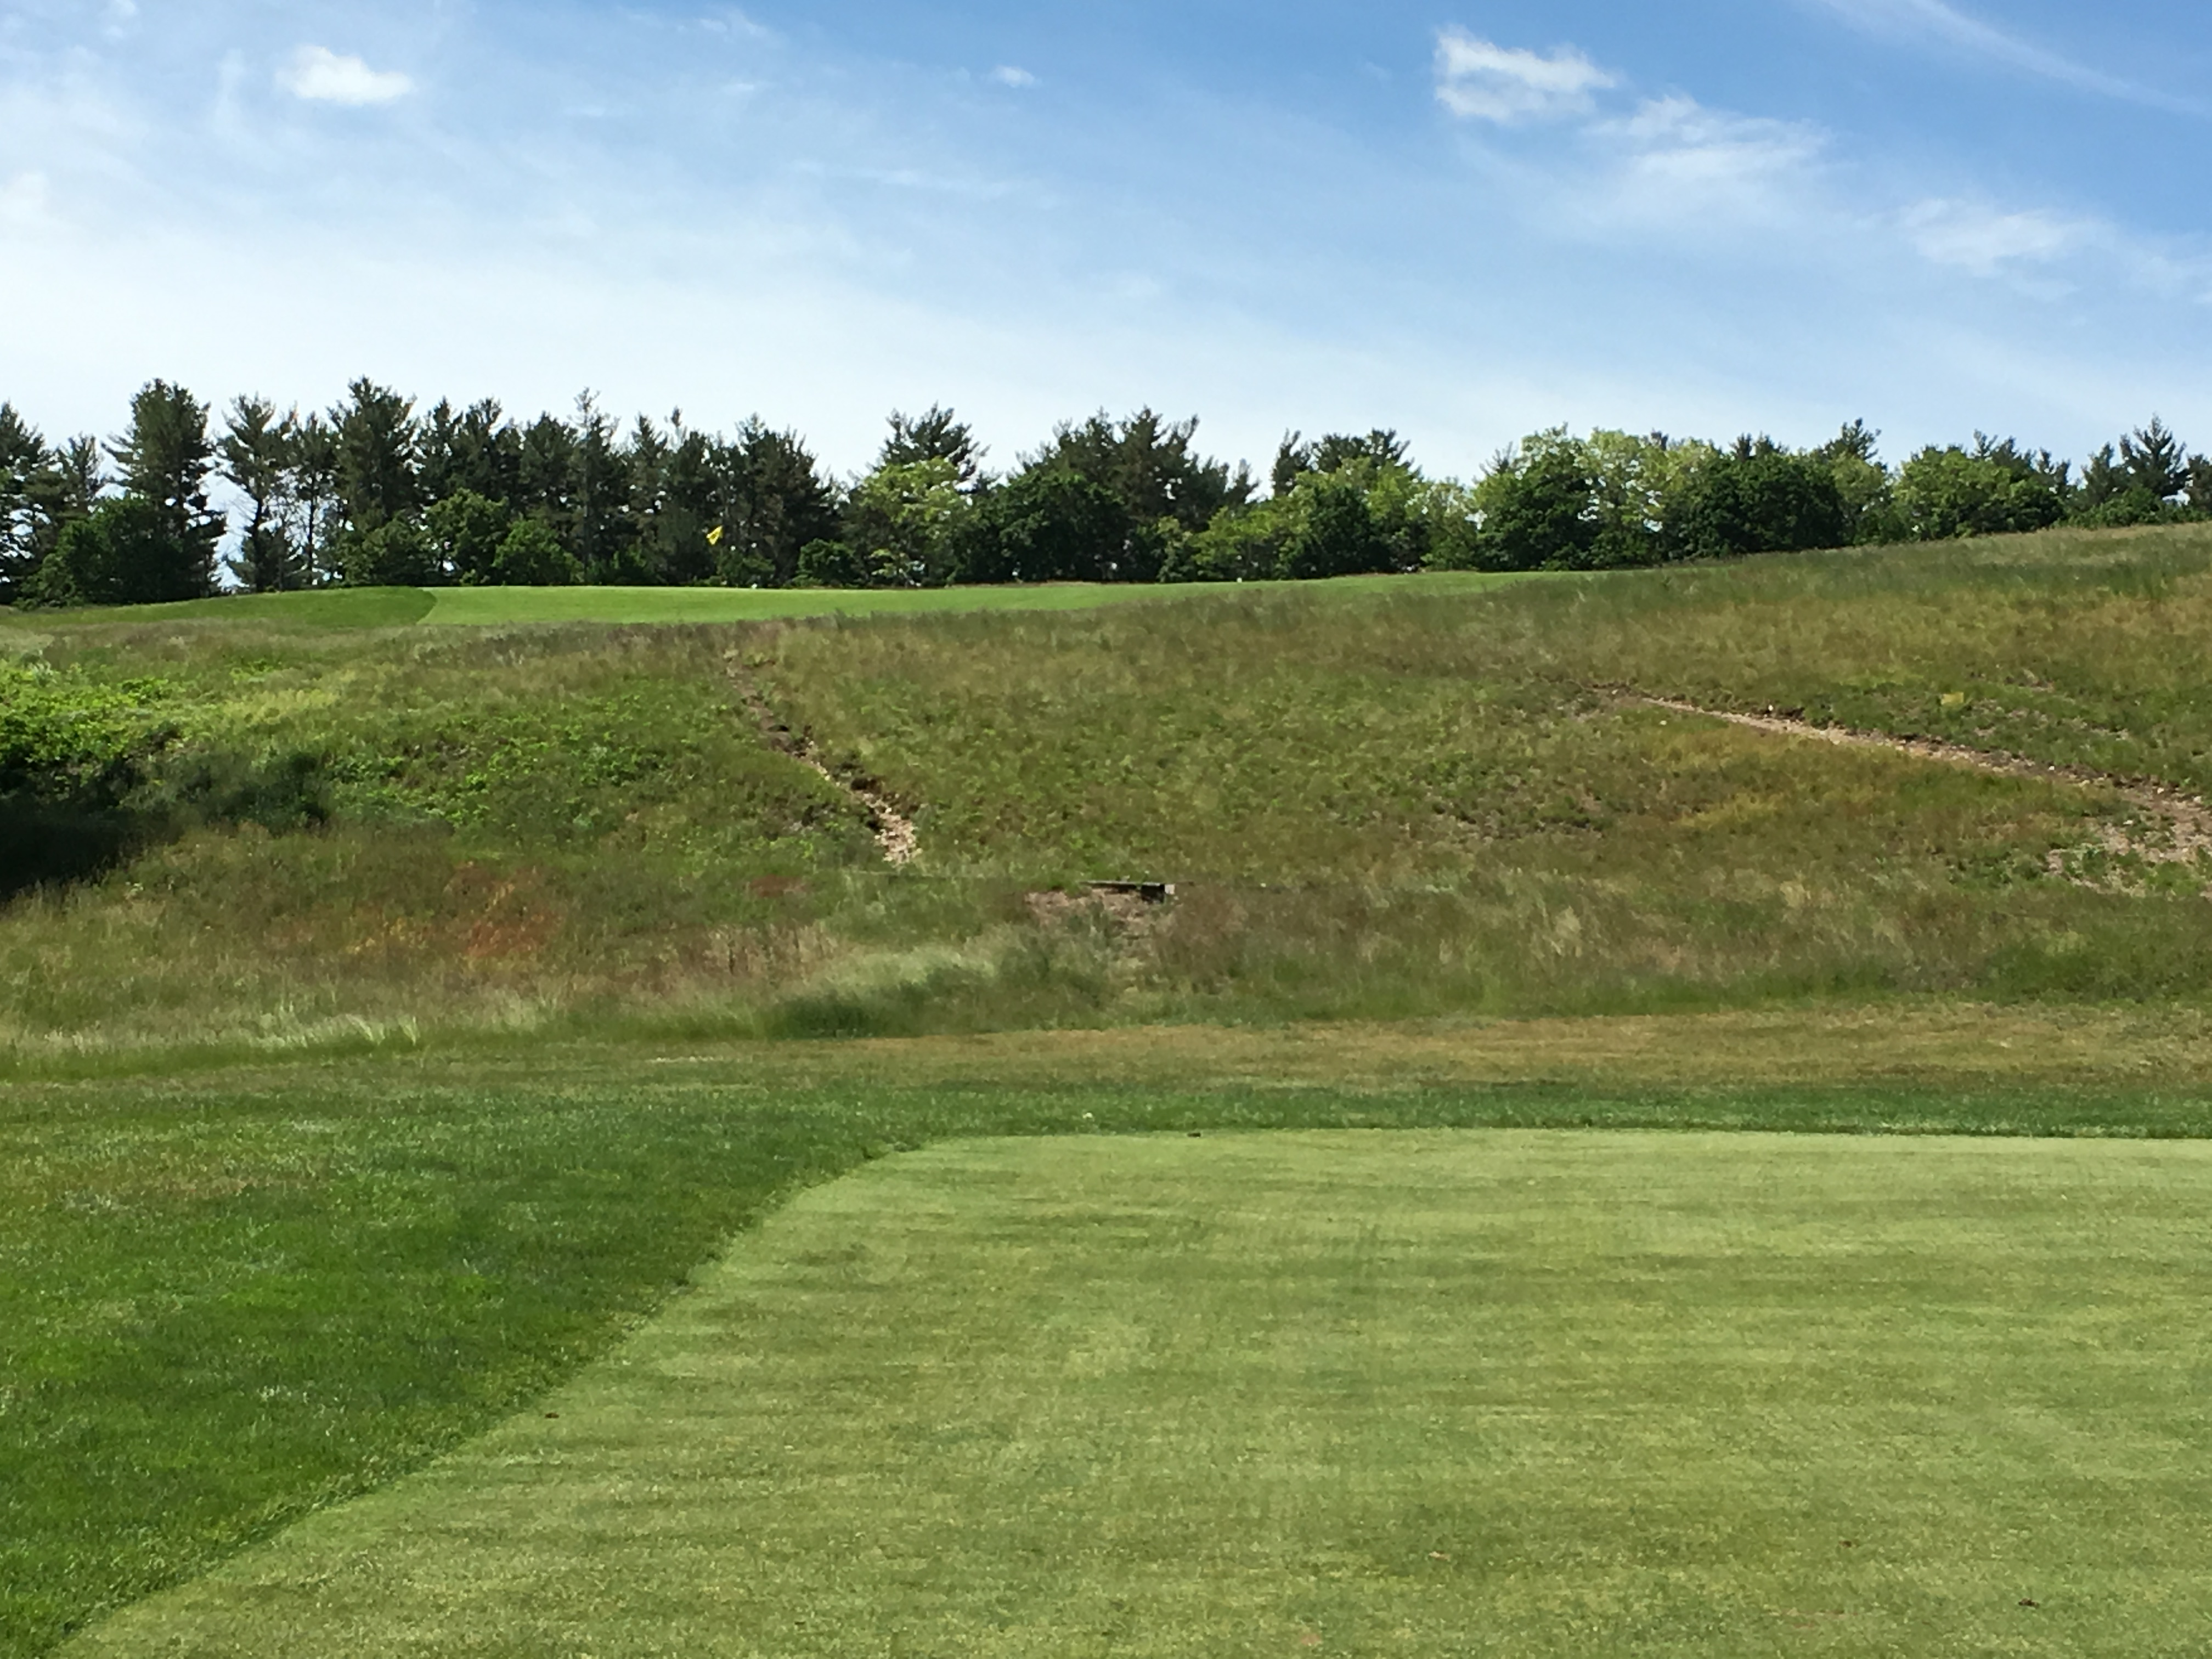 #13 - Par 4 - The approach up several stories to the elevated green